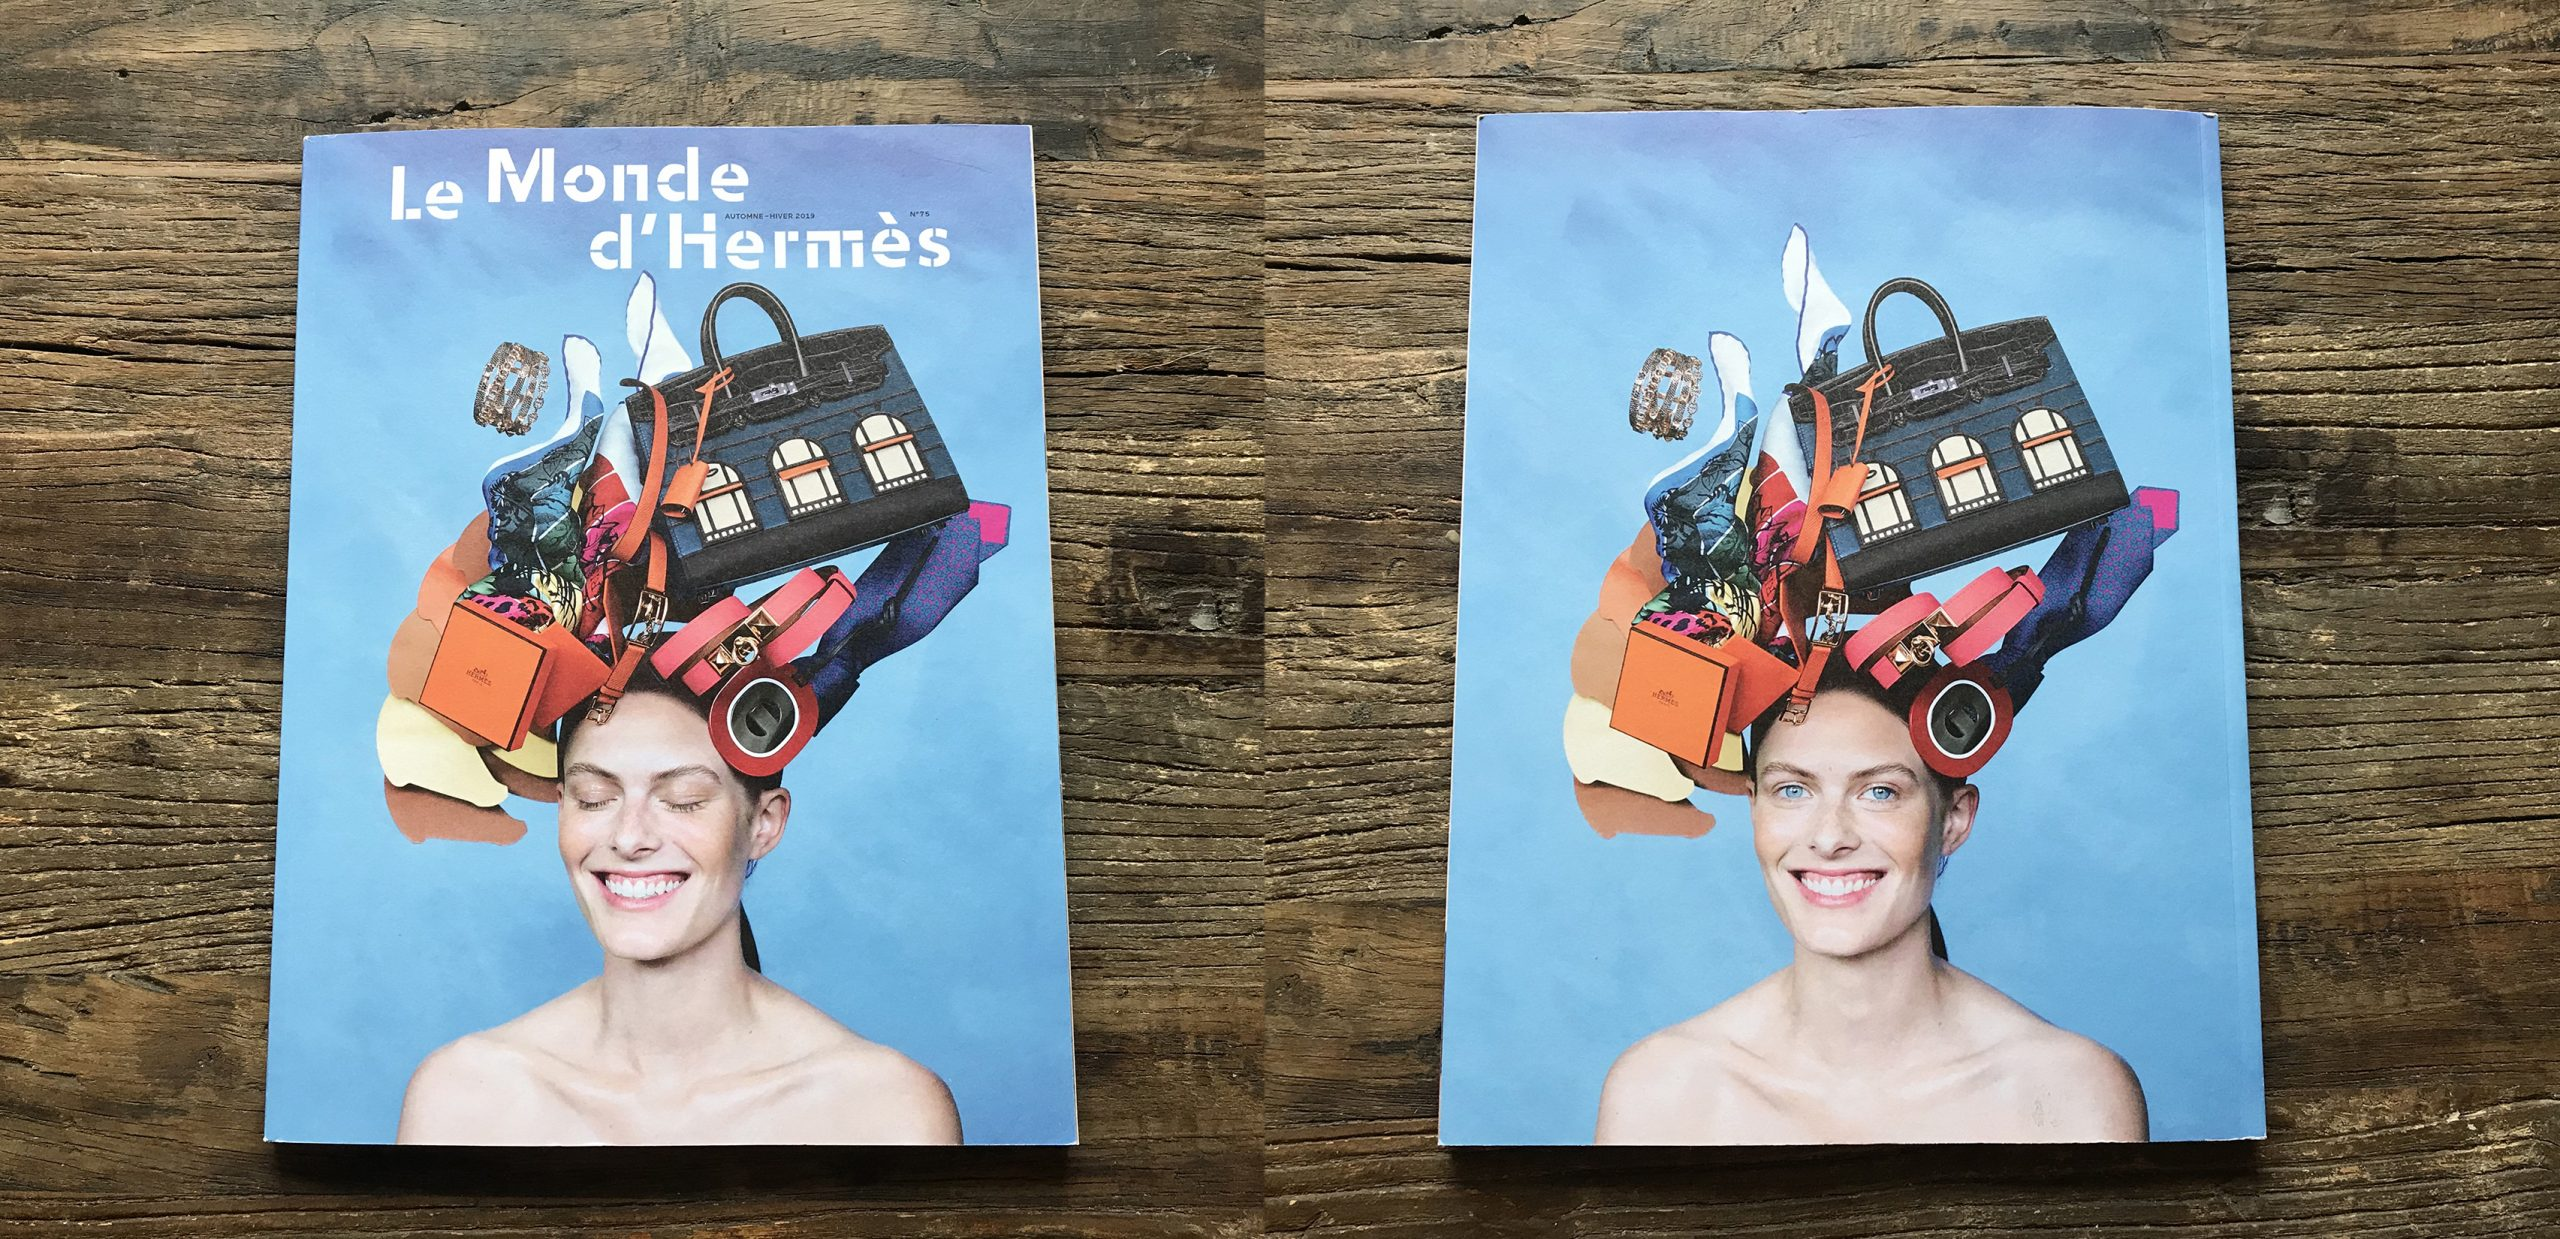 How Dior, Loewe, Louis Vuitton, Hermes, and Others Are Creating Fashion Zines to Own Their Message